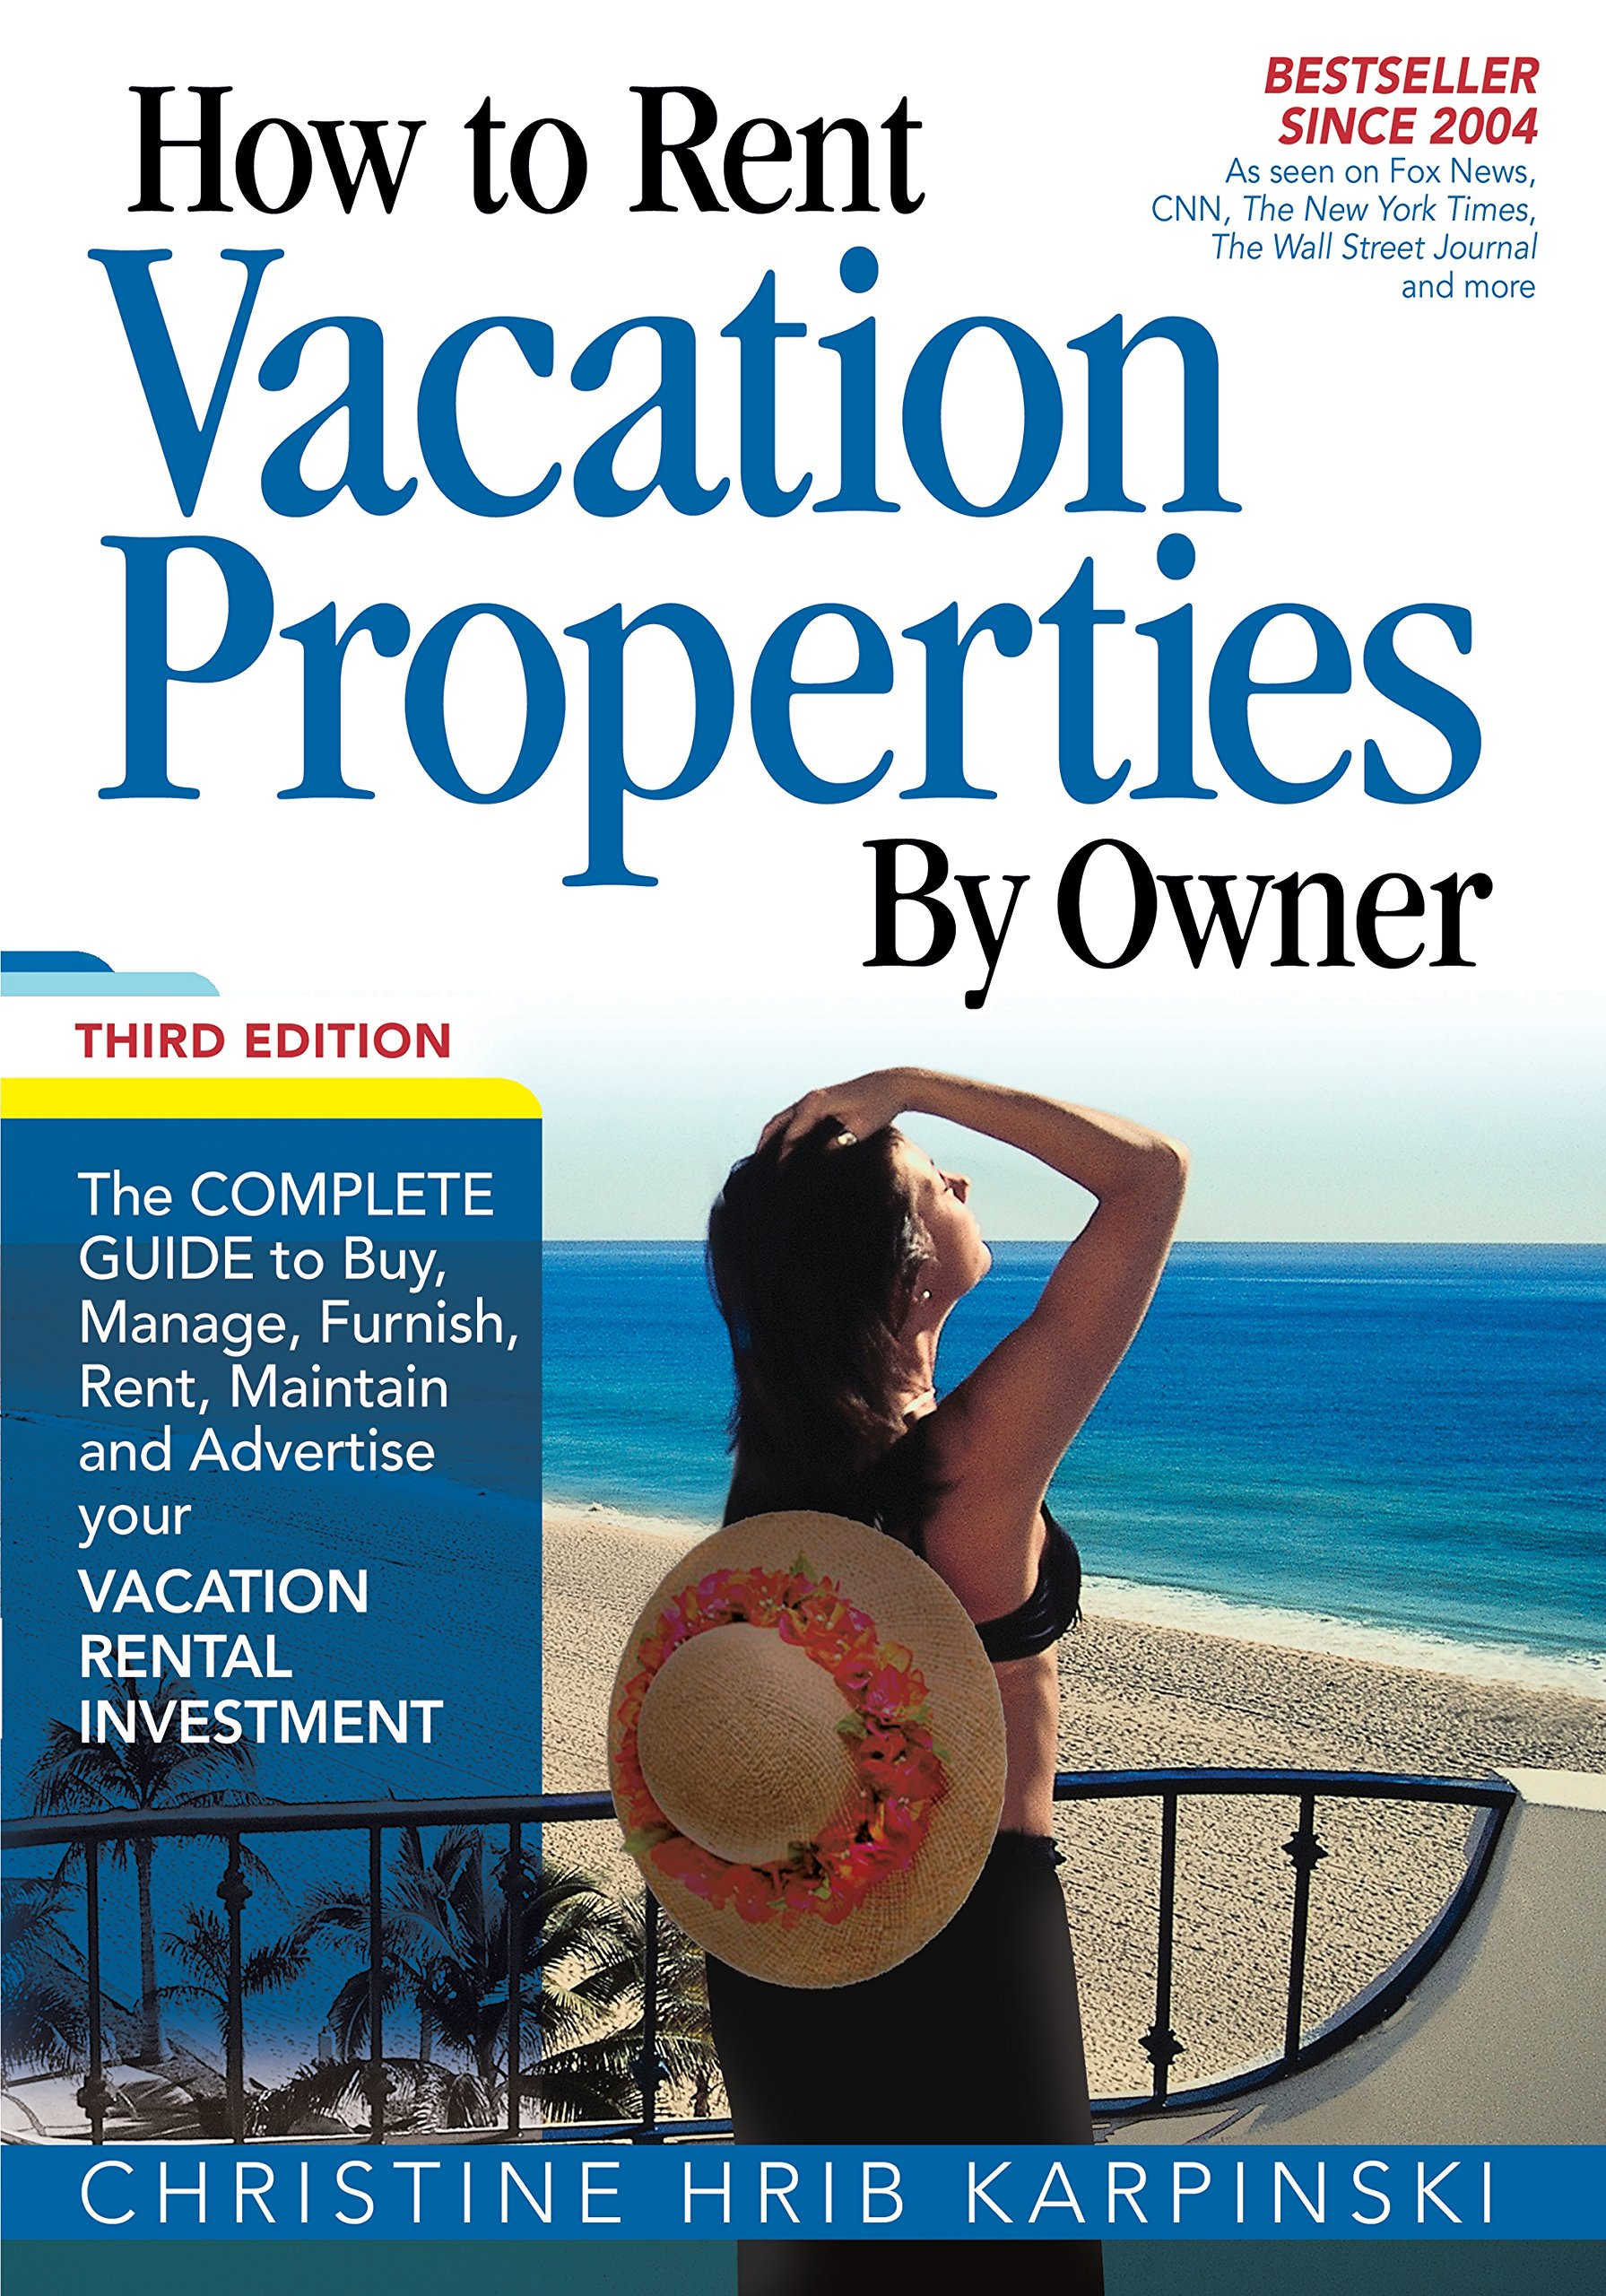 How to Rent Vacation Properties